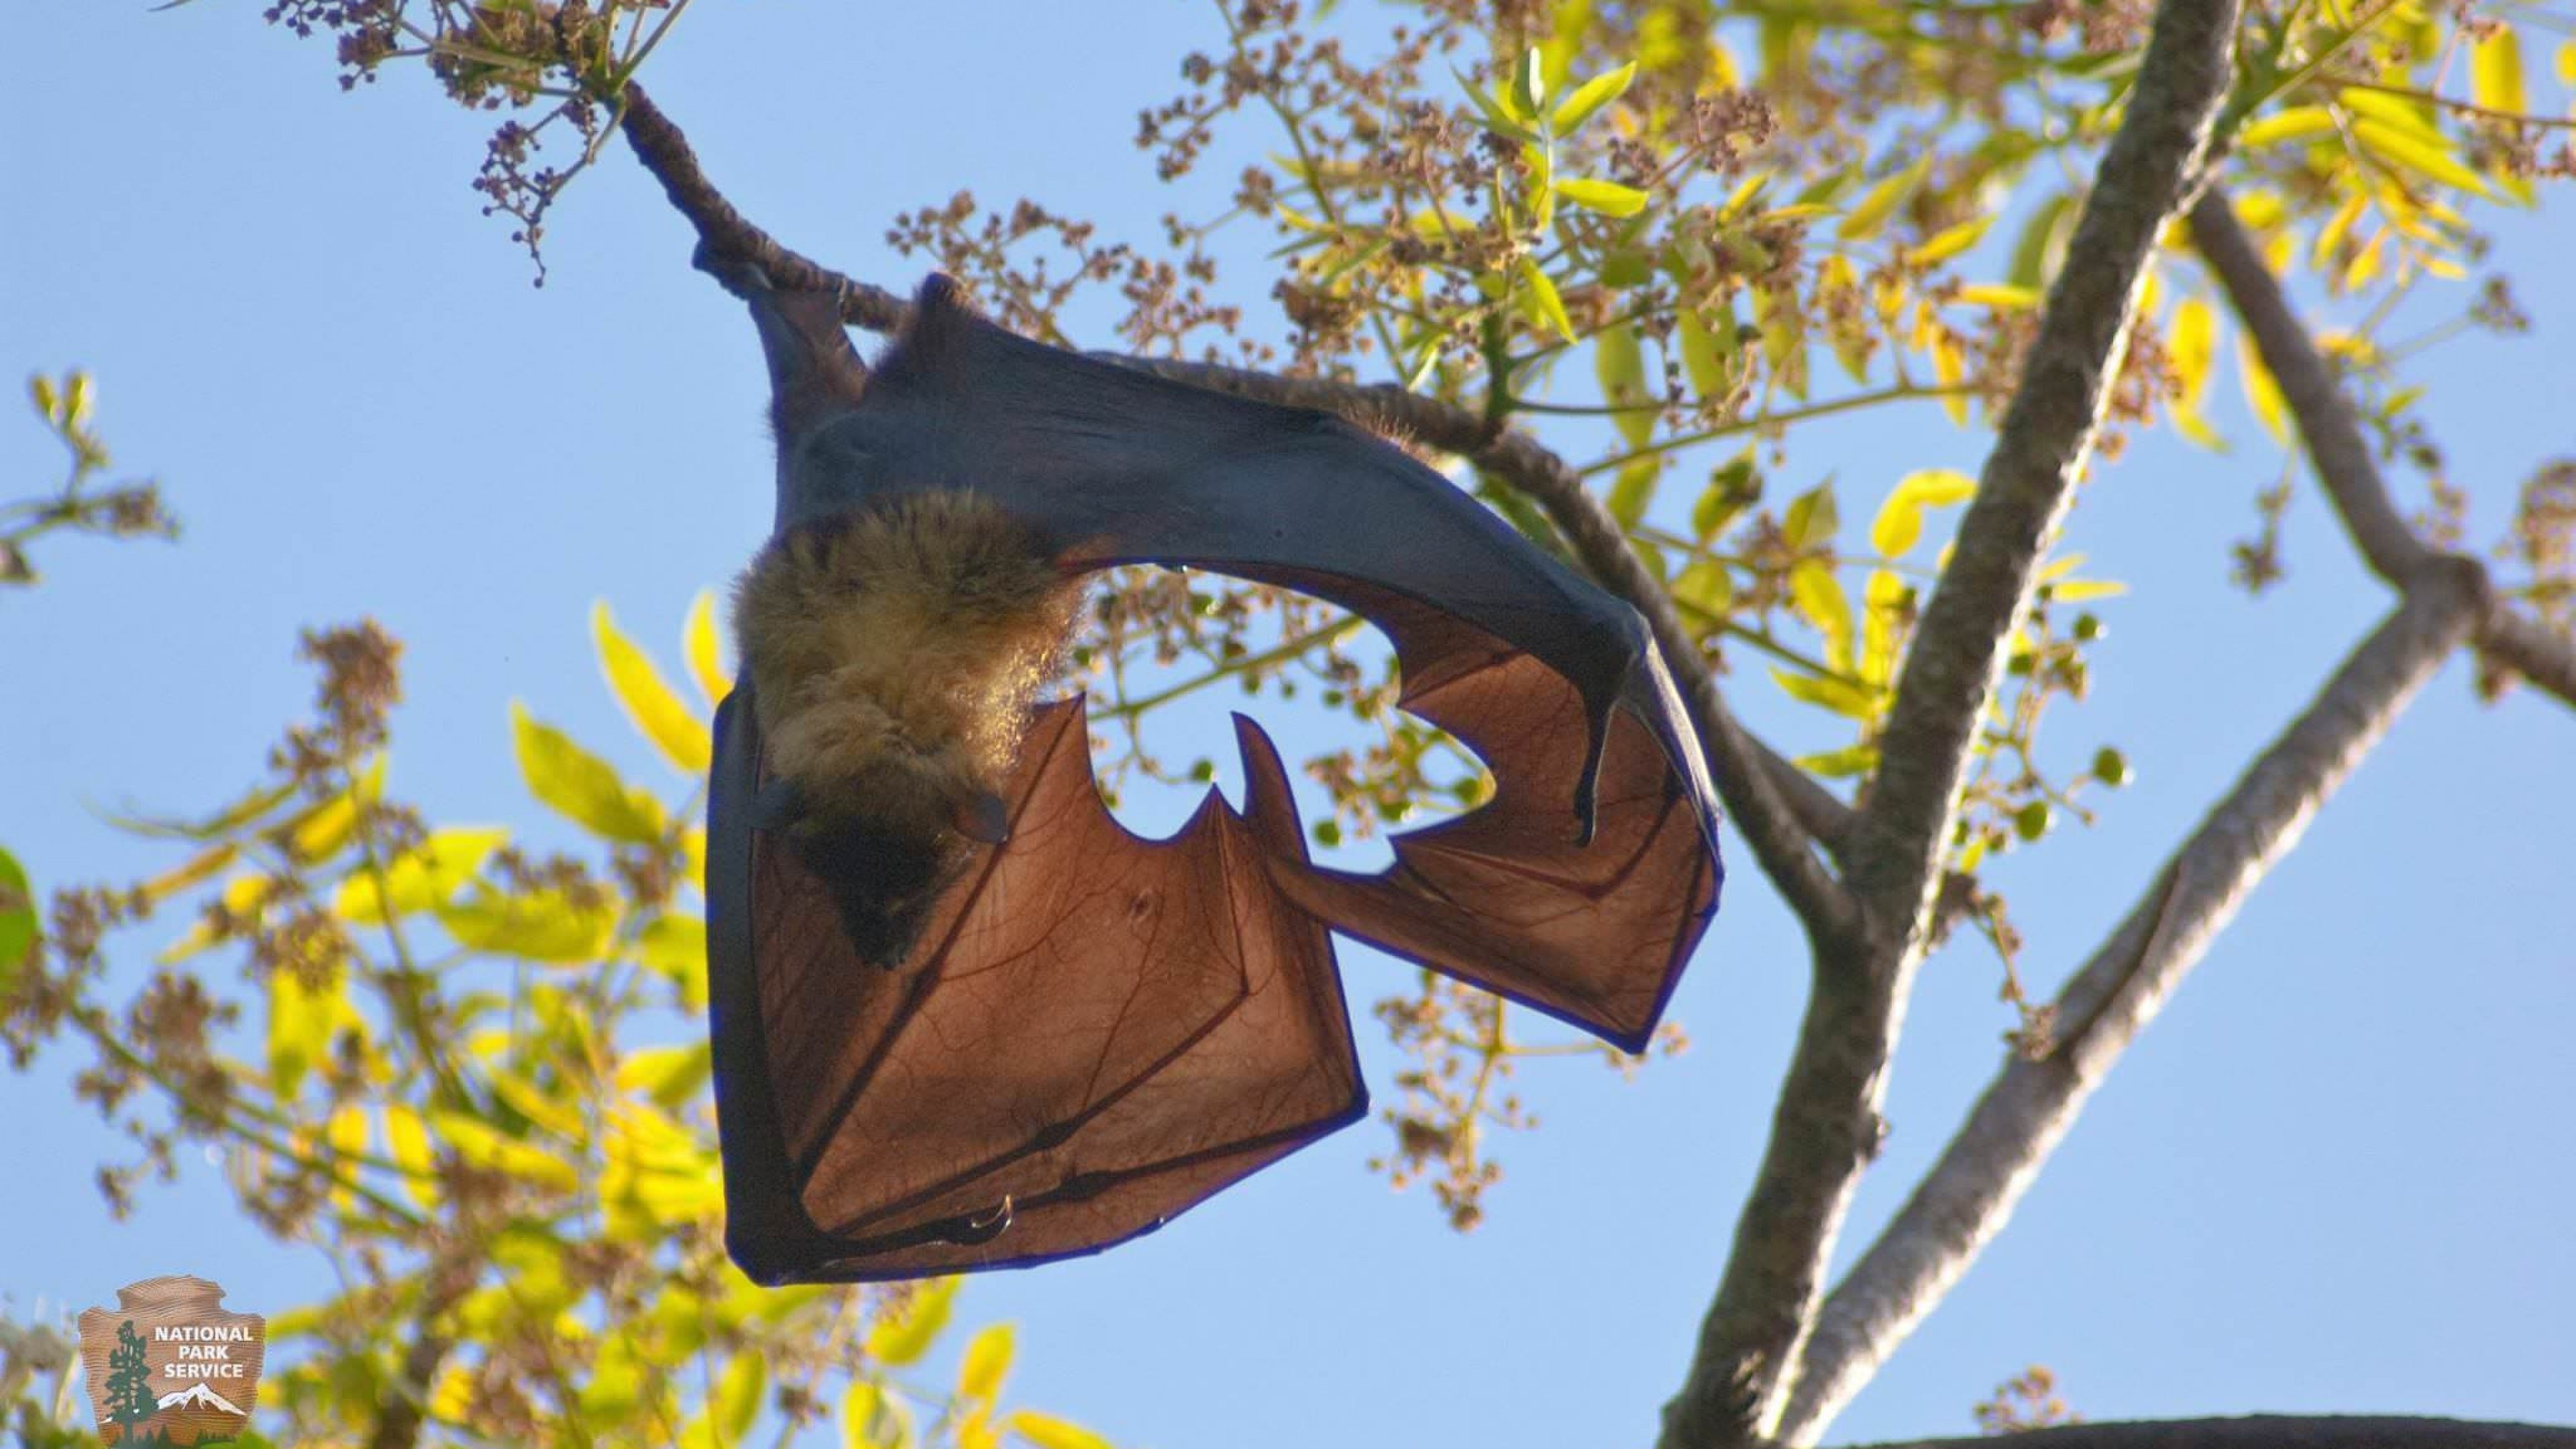 Hanging Samoan Fruit Bat in the sunlight at the National Park of the American Samoa